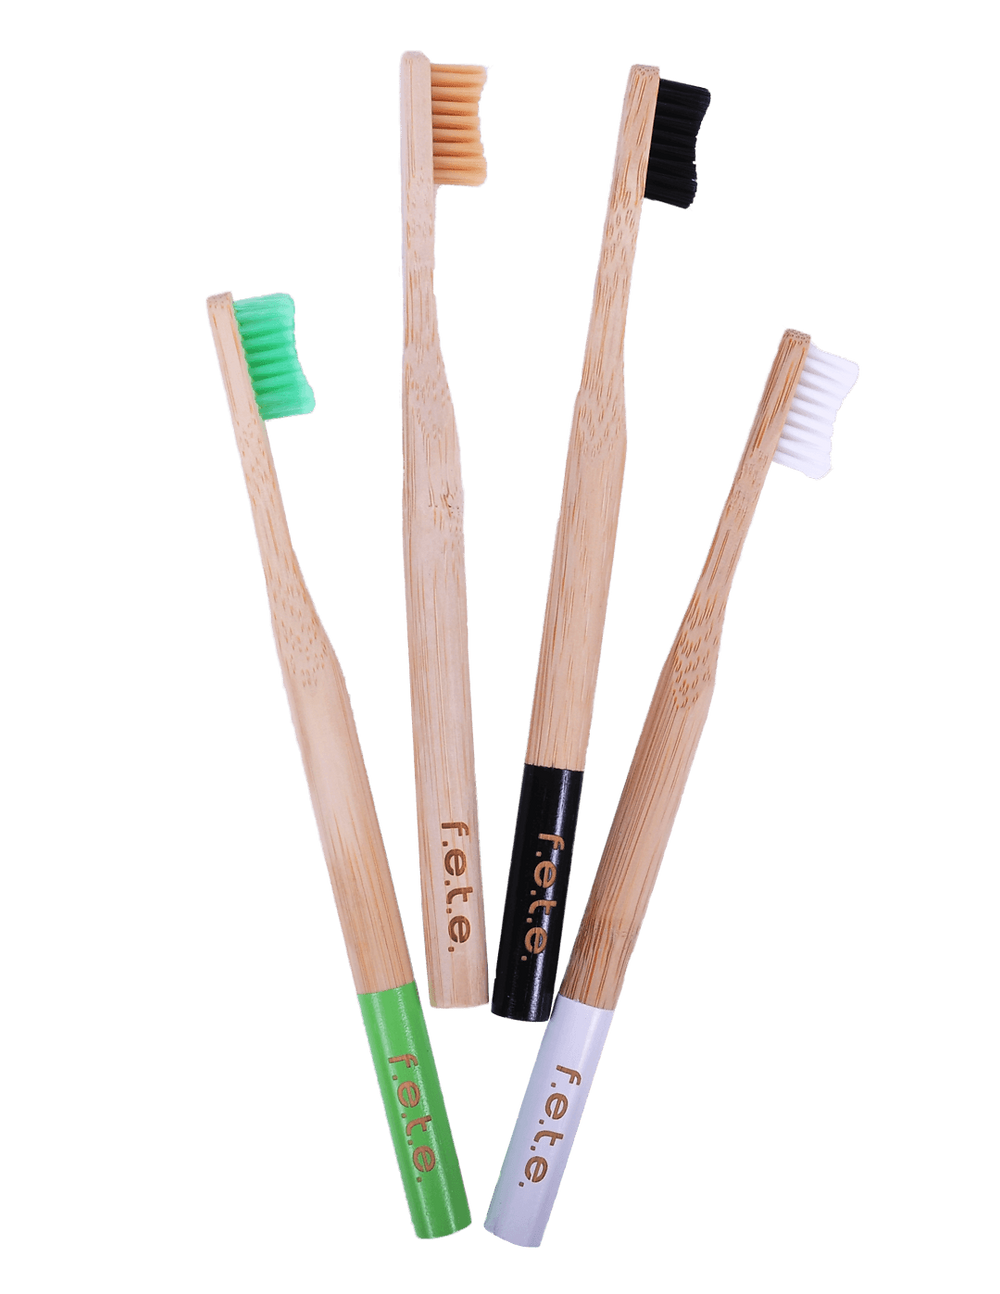 F.E.T.E. (From Earth To Earth) Plastic-Free, Bamboo Toothbrushes